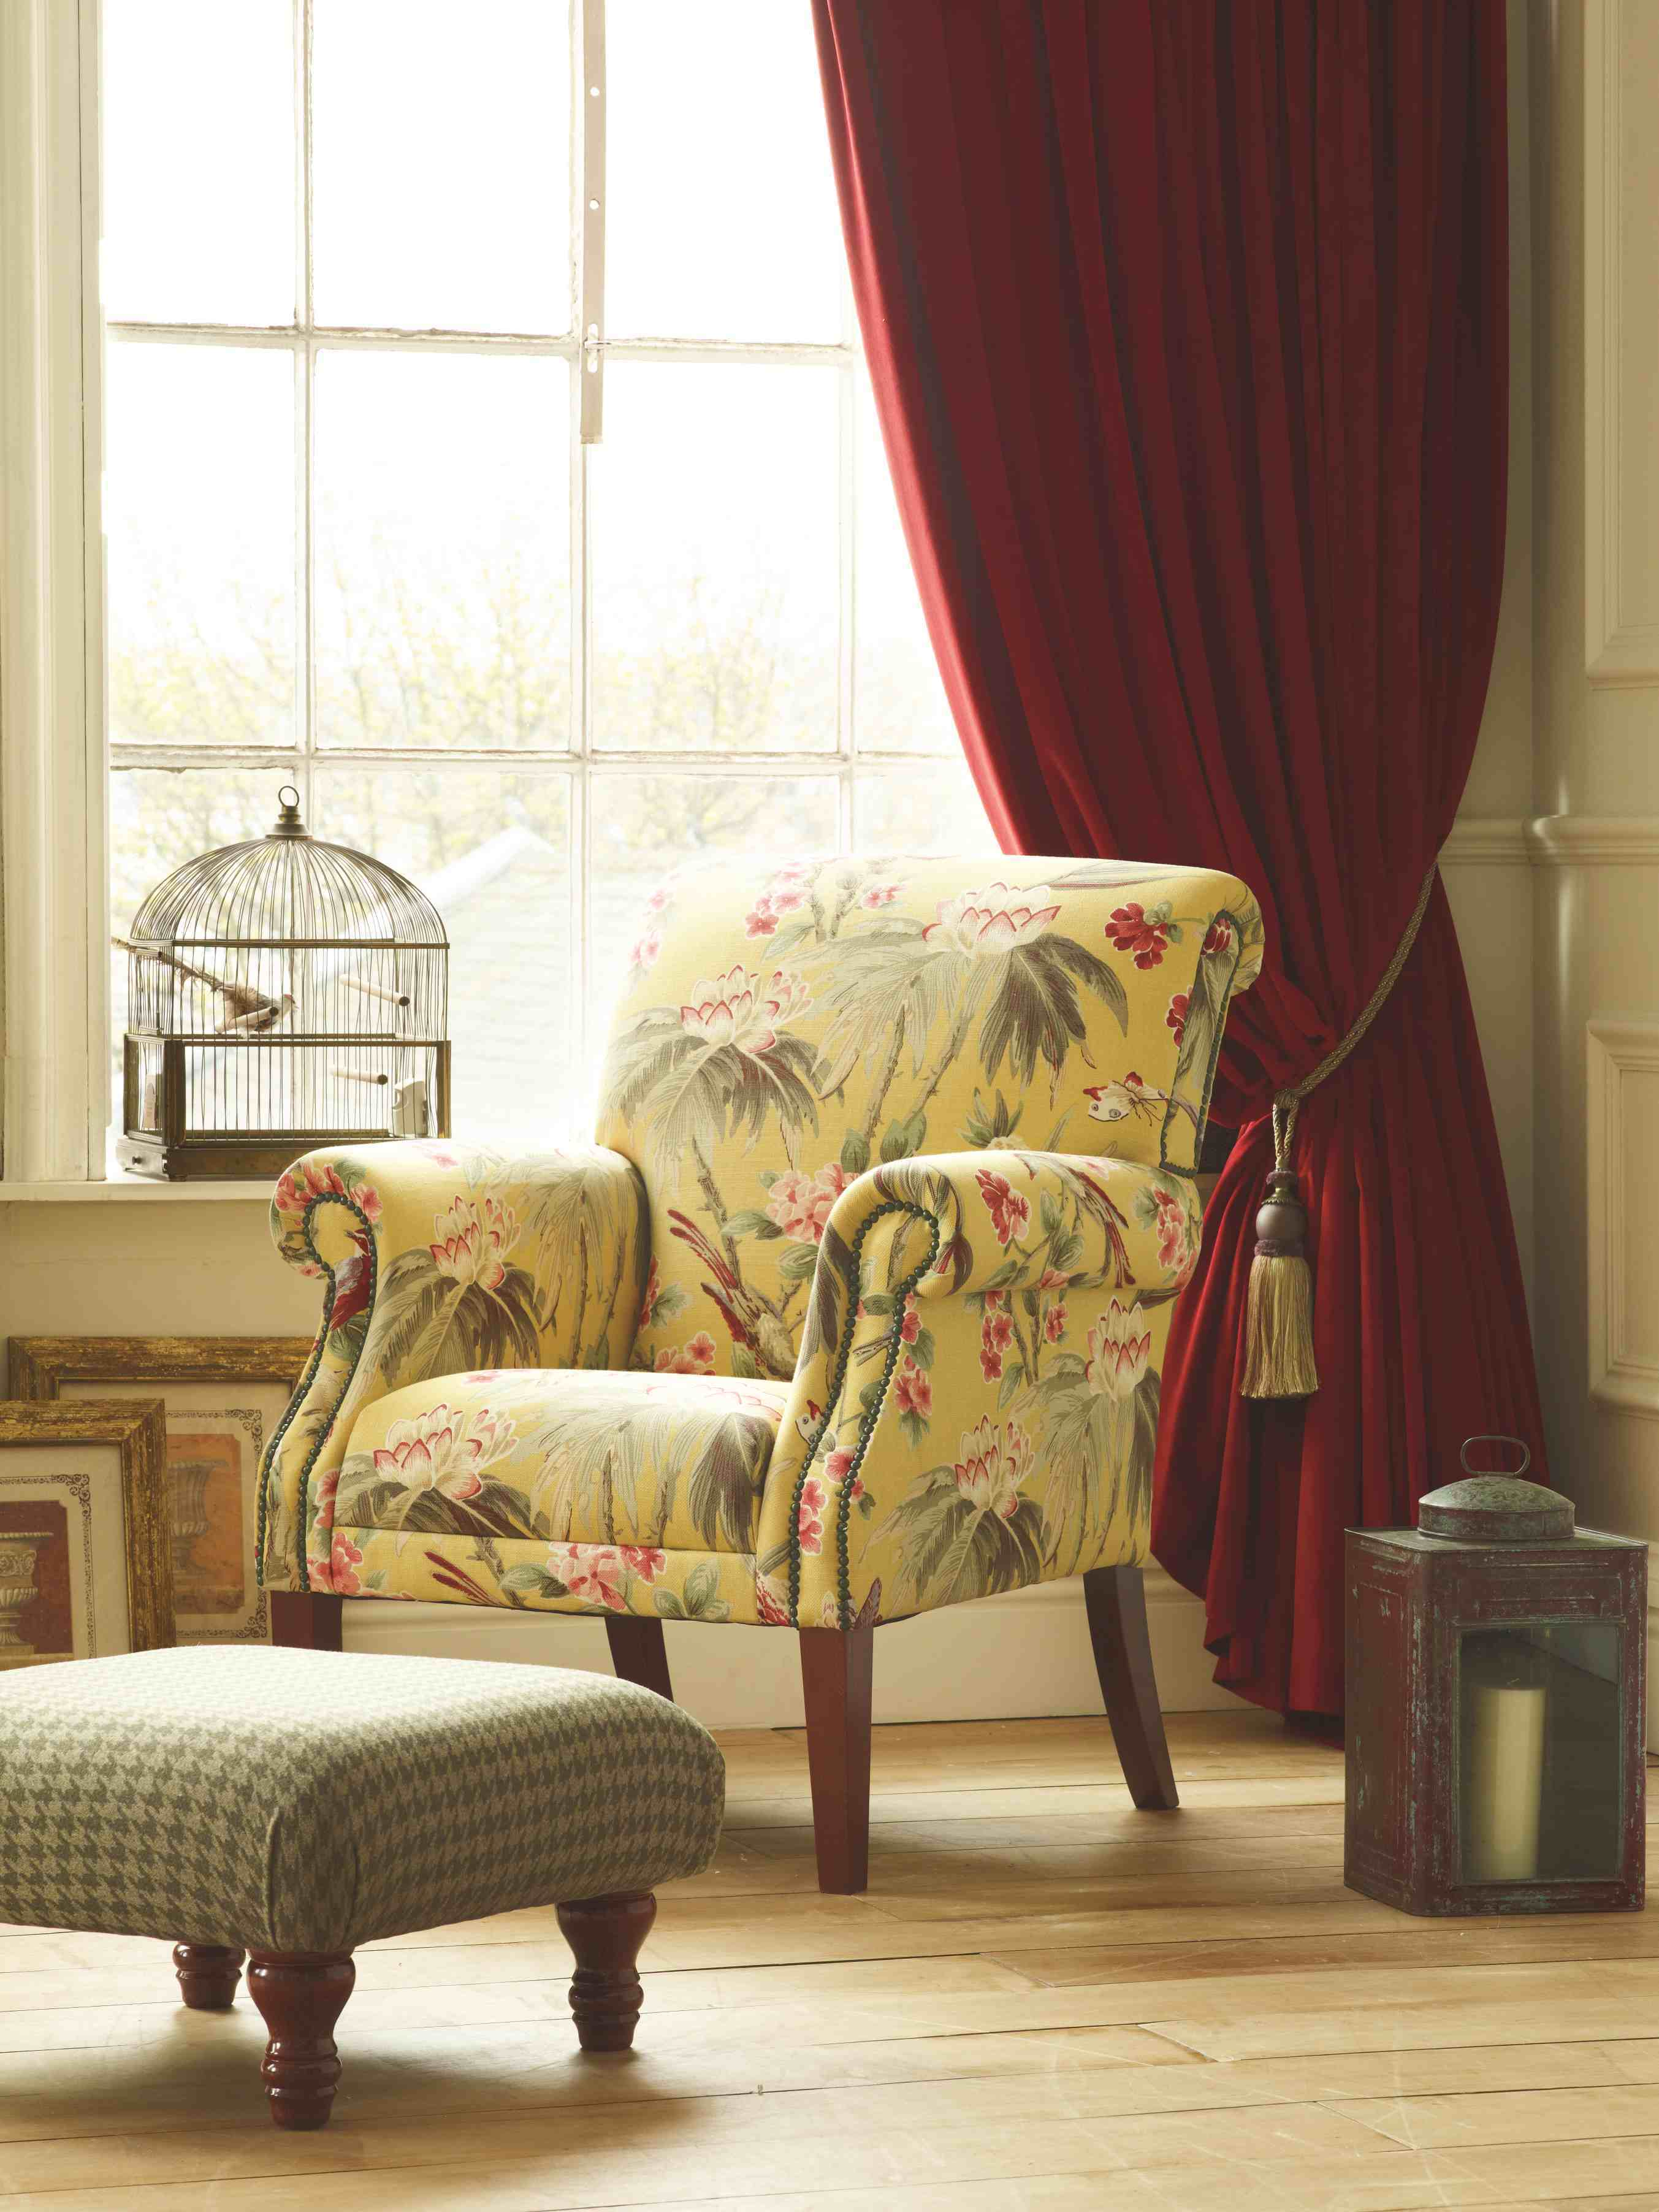 Sandringham Saffron Chair1